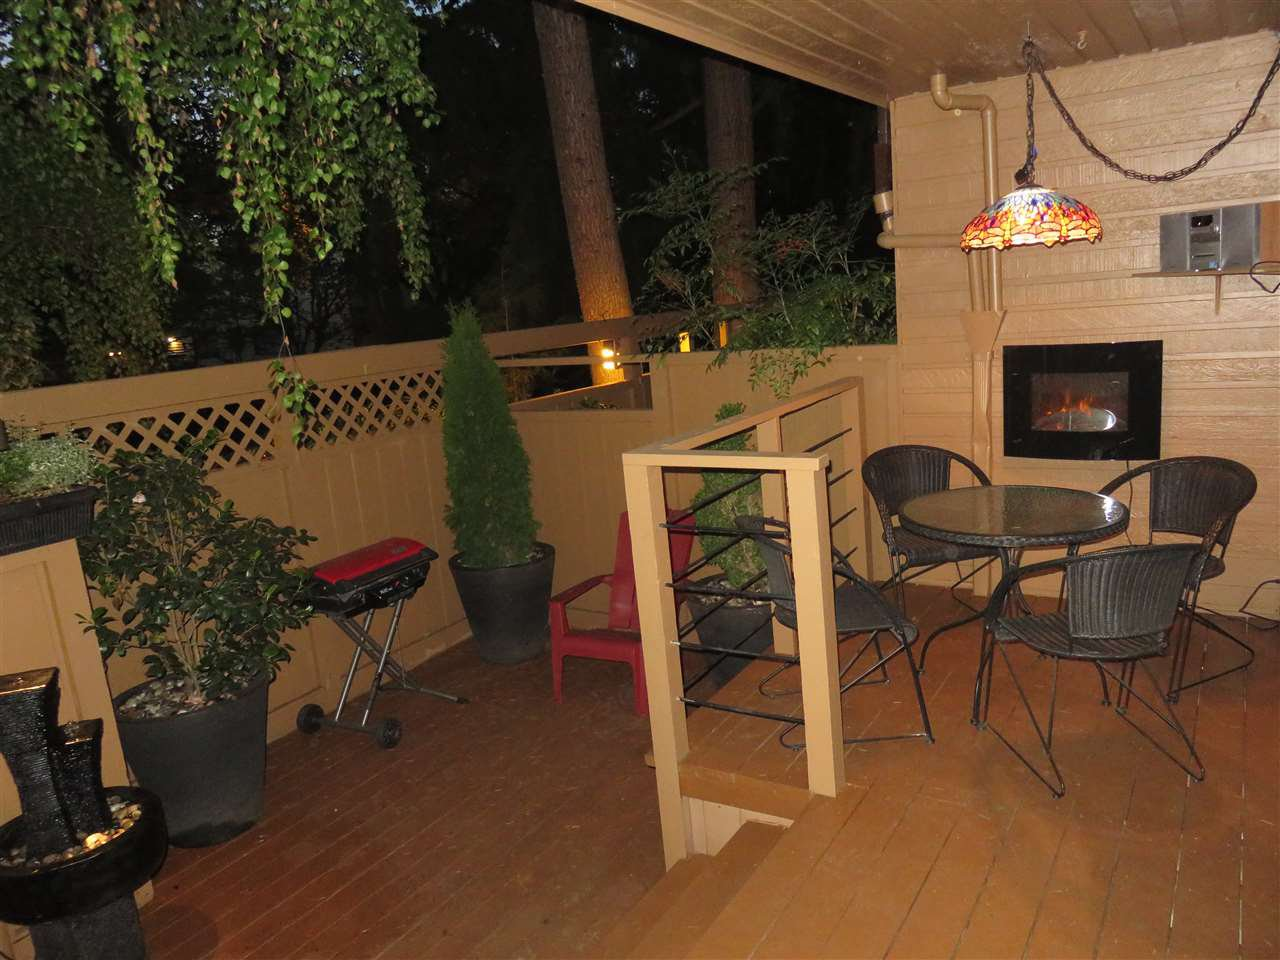 """Photo 1: Photos: 101 1930 W 3RD Avenue in Vancouver: Kitsilano Condo for sale in """"WESTVIEW"""" (Vancouver West)  : MLS®# R2169188"""